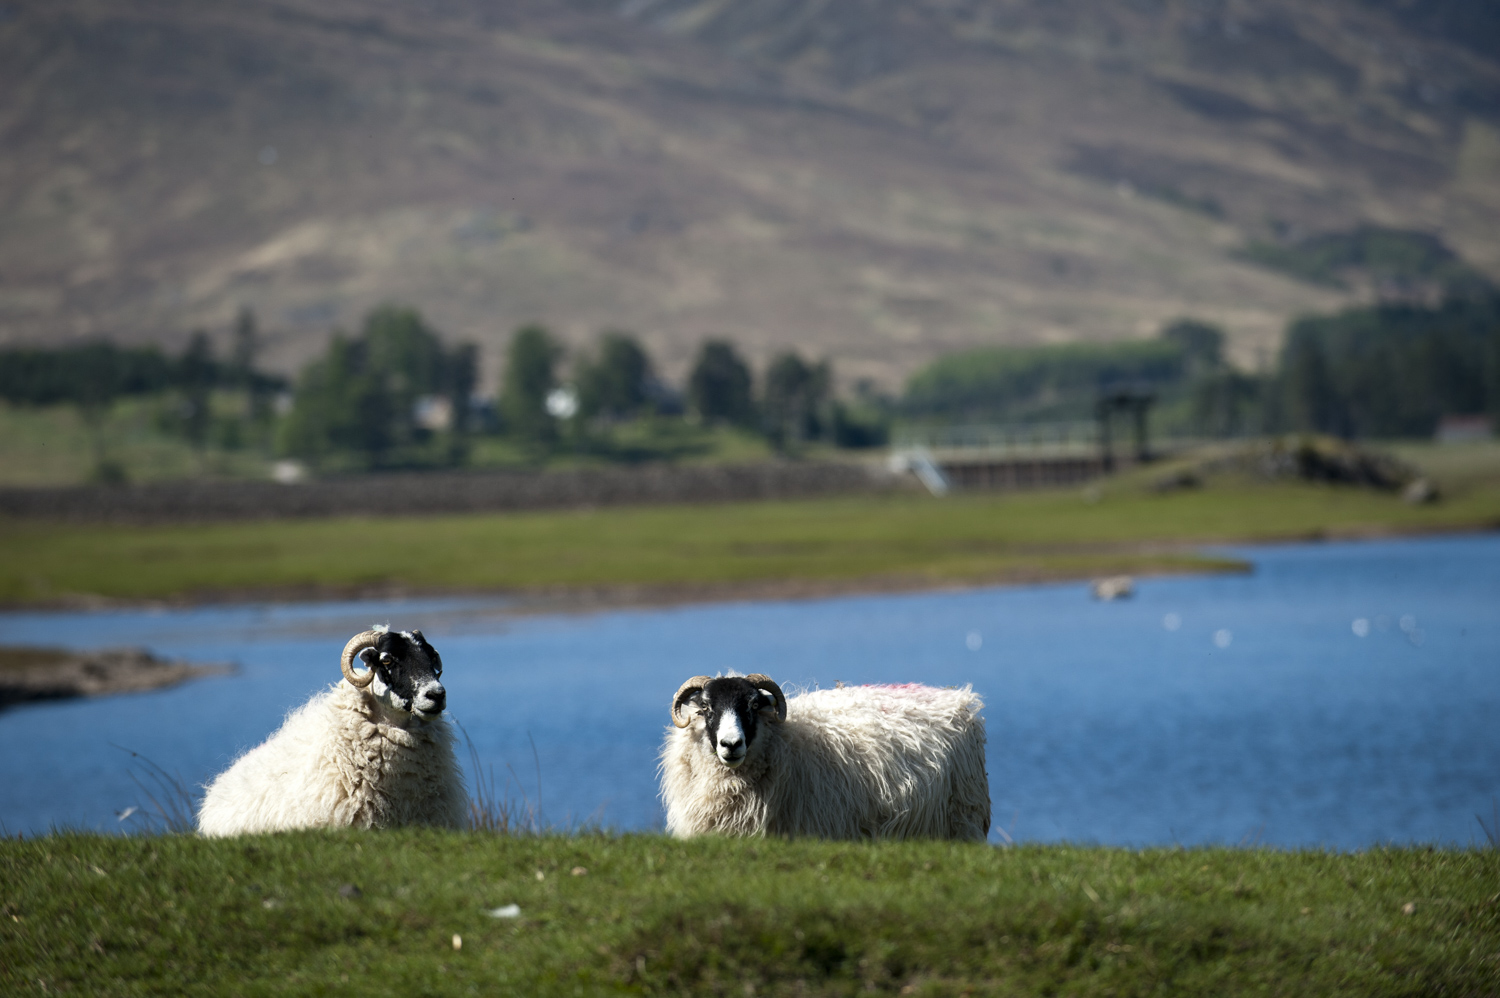 The wooly locals